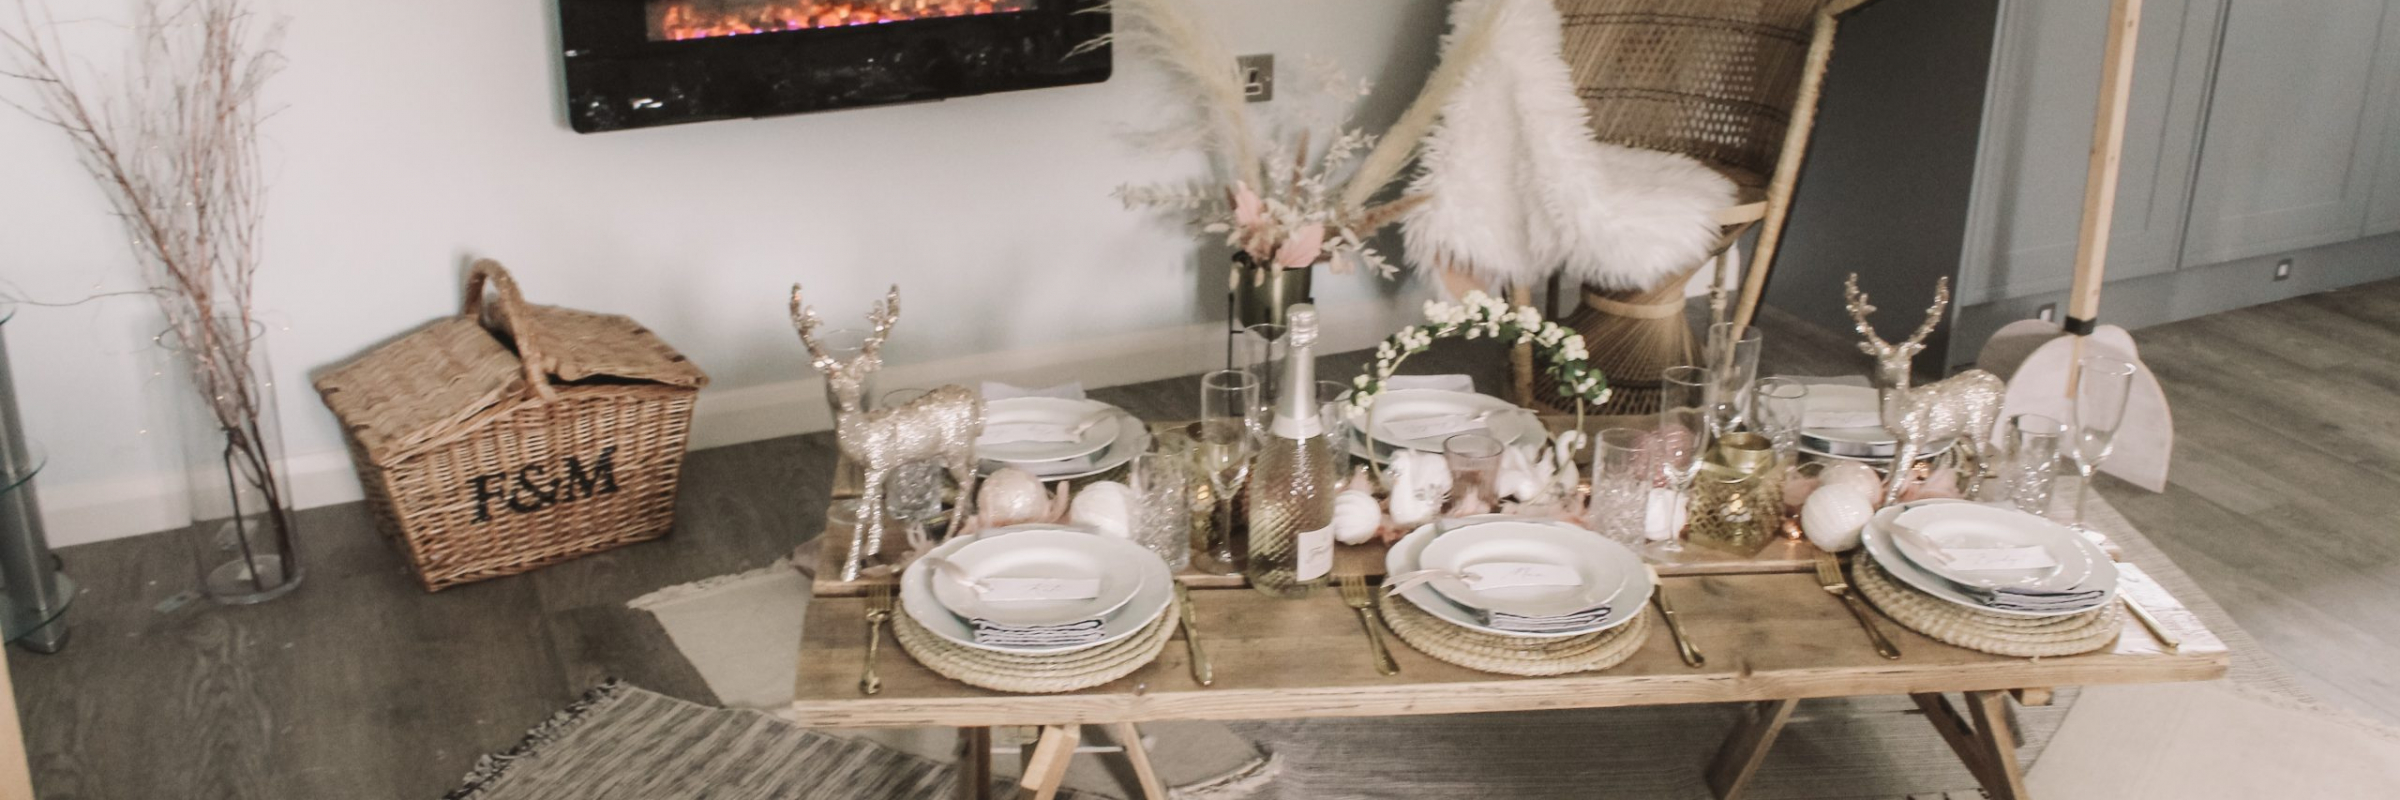 Festive family picnic party inspiration from www.pitch-boutique.co.uk - featuring reclaimed wooden tables, themed soft furnishings, peacock chairs, artisan florals and grazing tables!